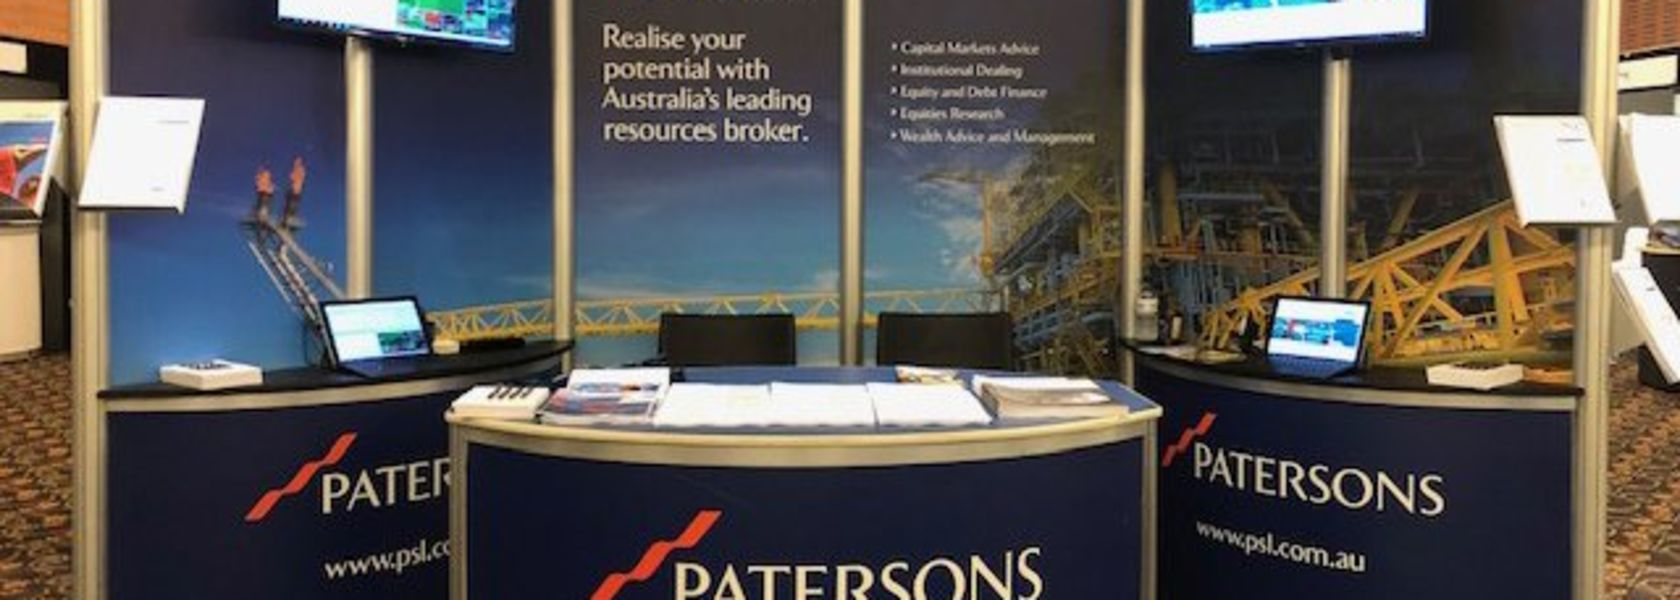 Canaccord to acquire Patersons